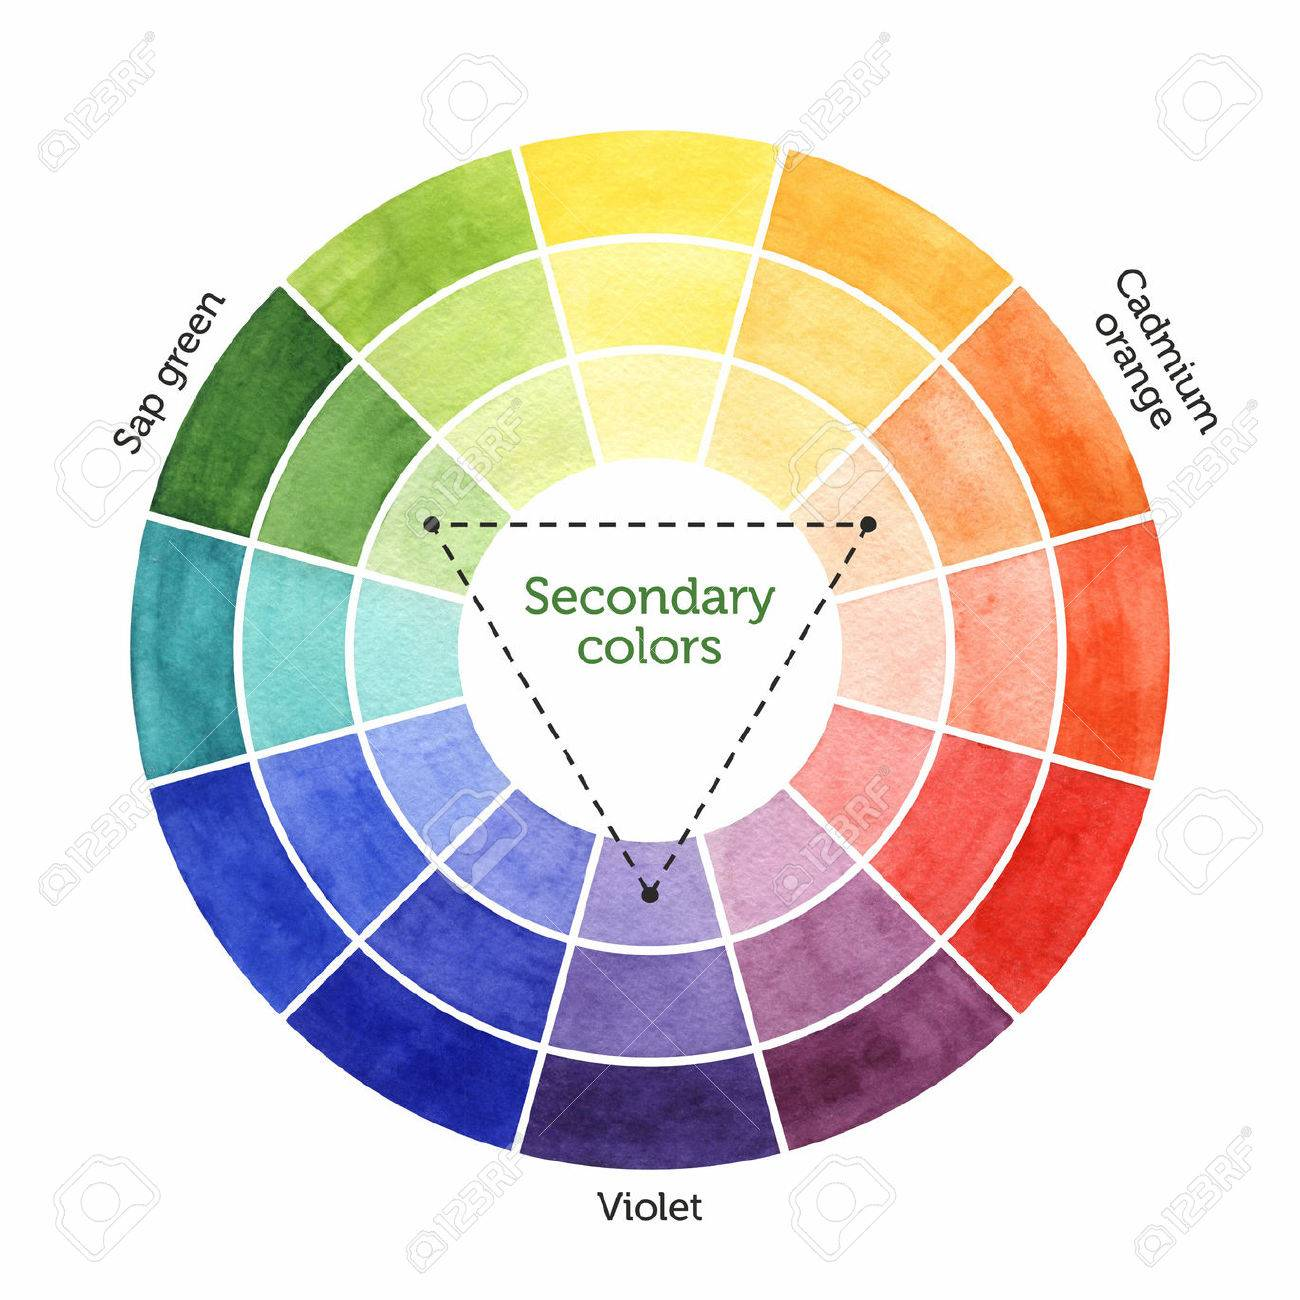 Color Mixing Chart For Watercolor Painting Secondary Colors Stock Photo